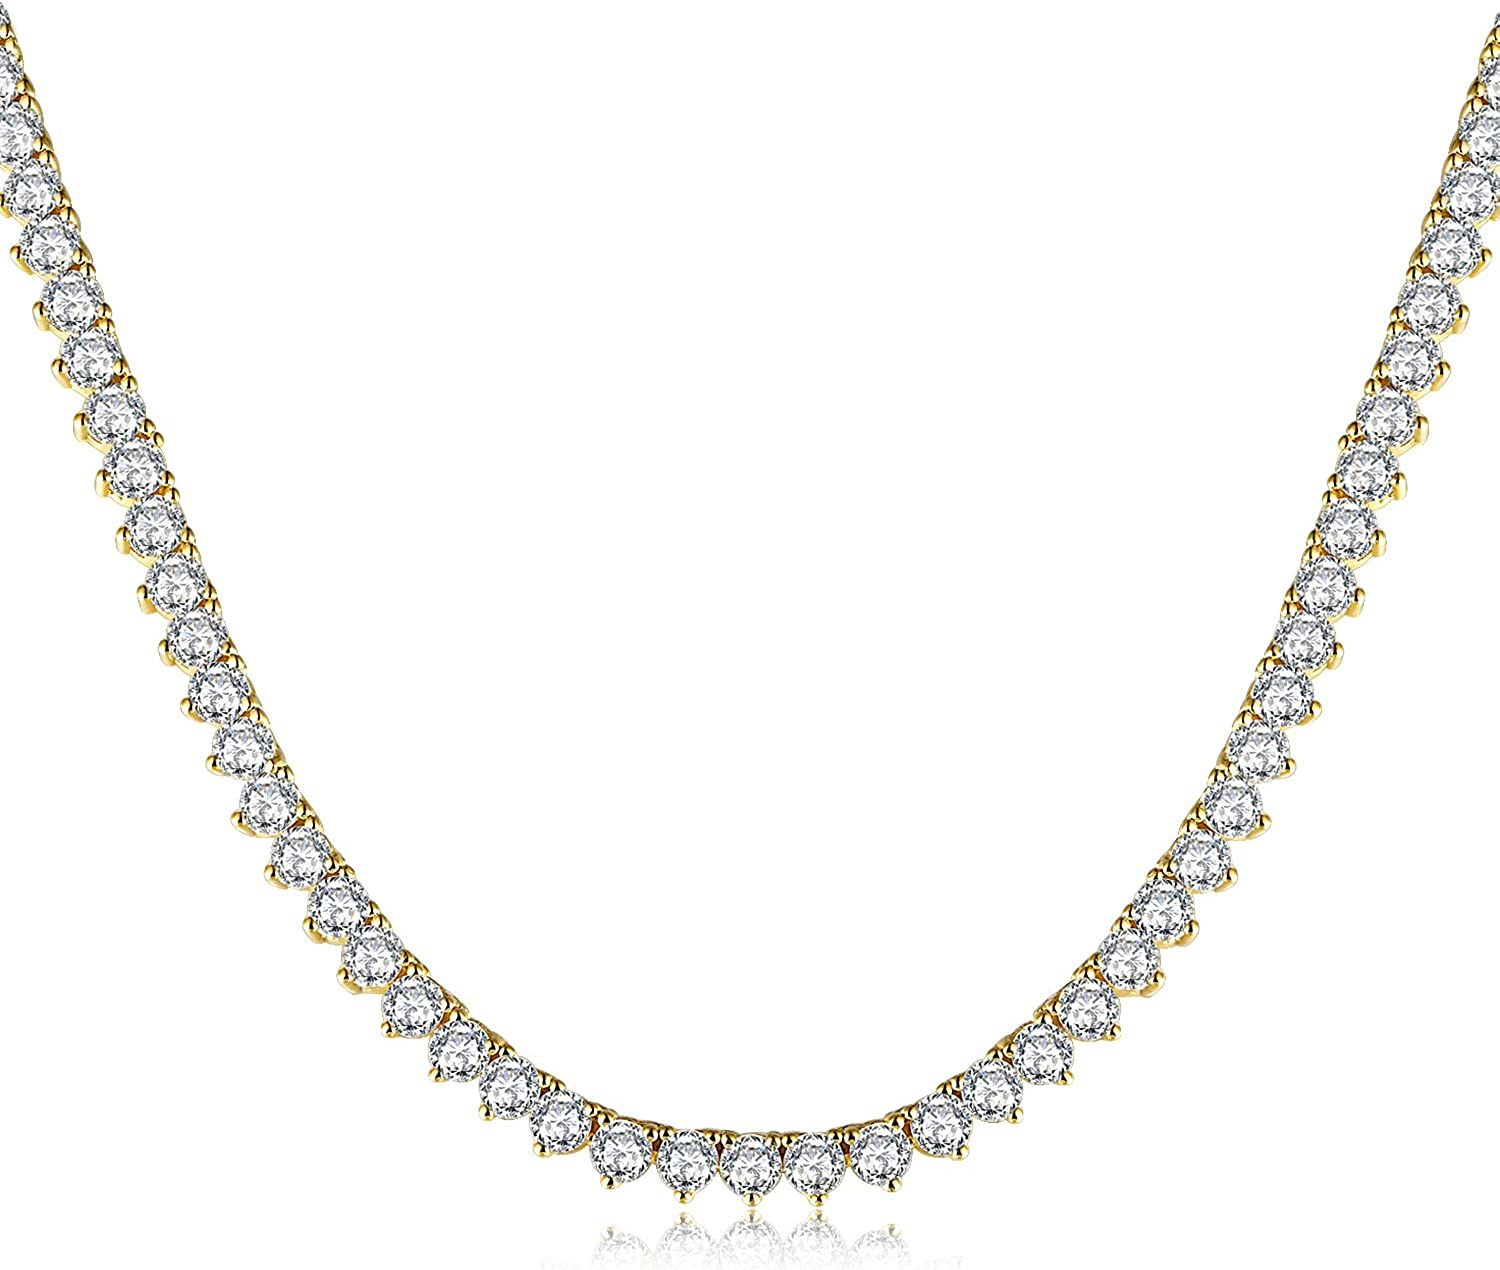 Diamond Tennis Necklace for Women and Men 18K Gold Plated Cubic Zirconia Chain, 4mm Round cut CZ